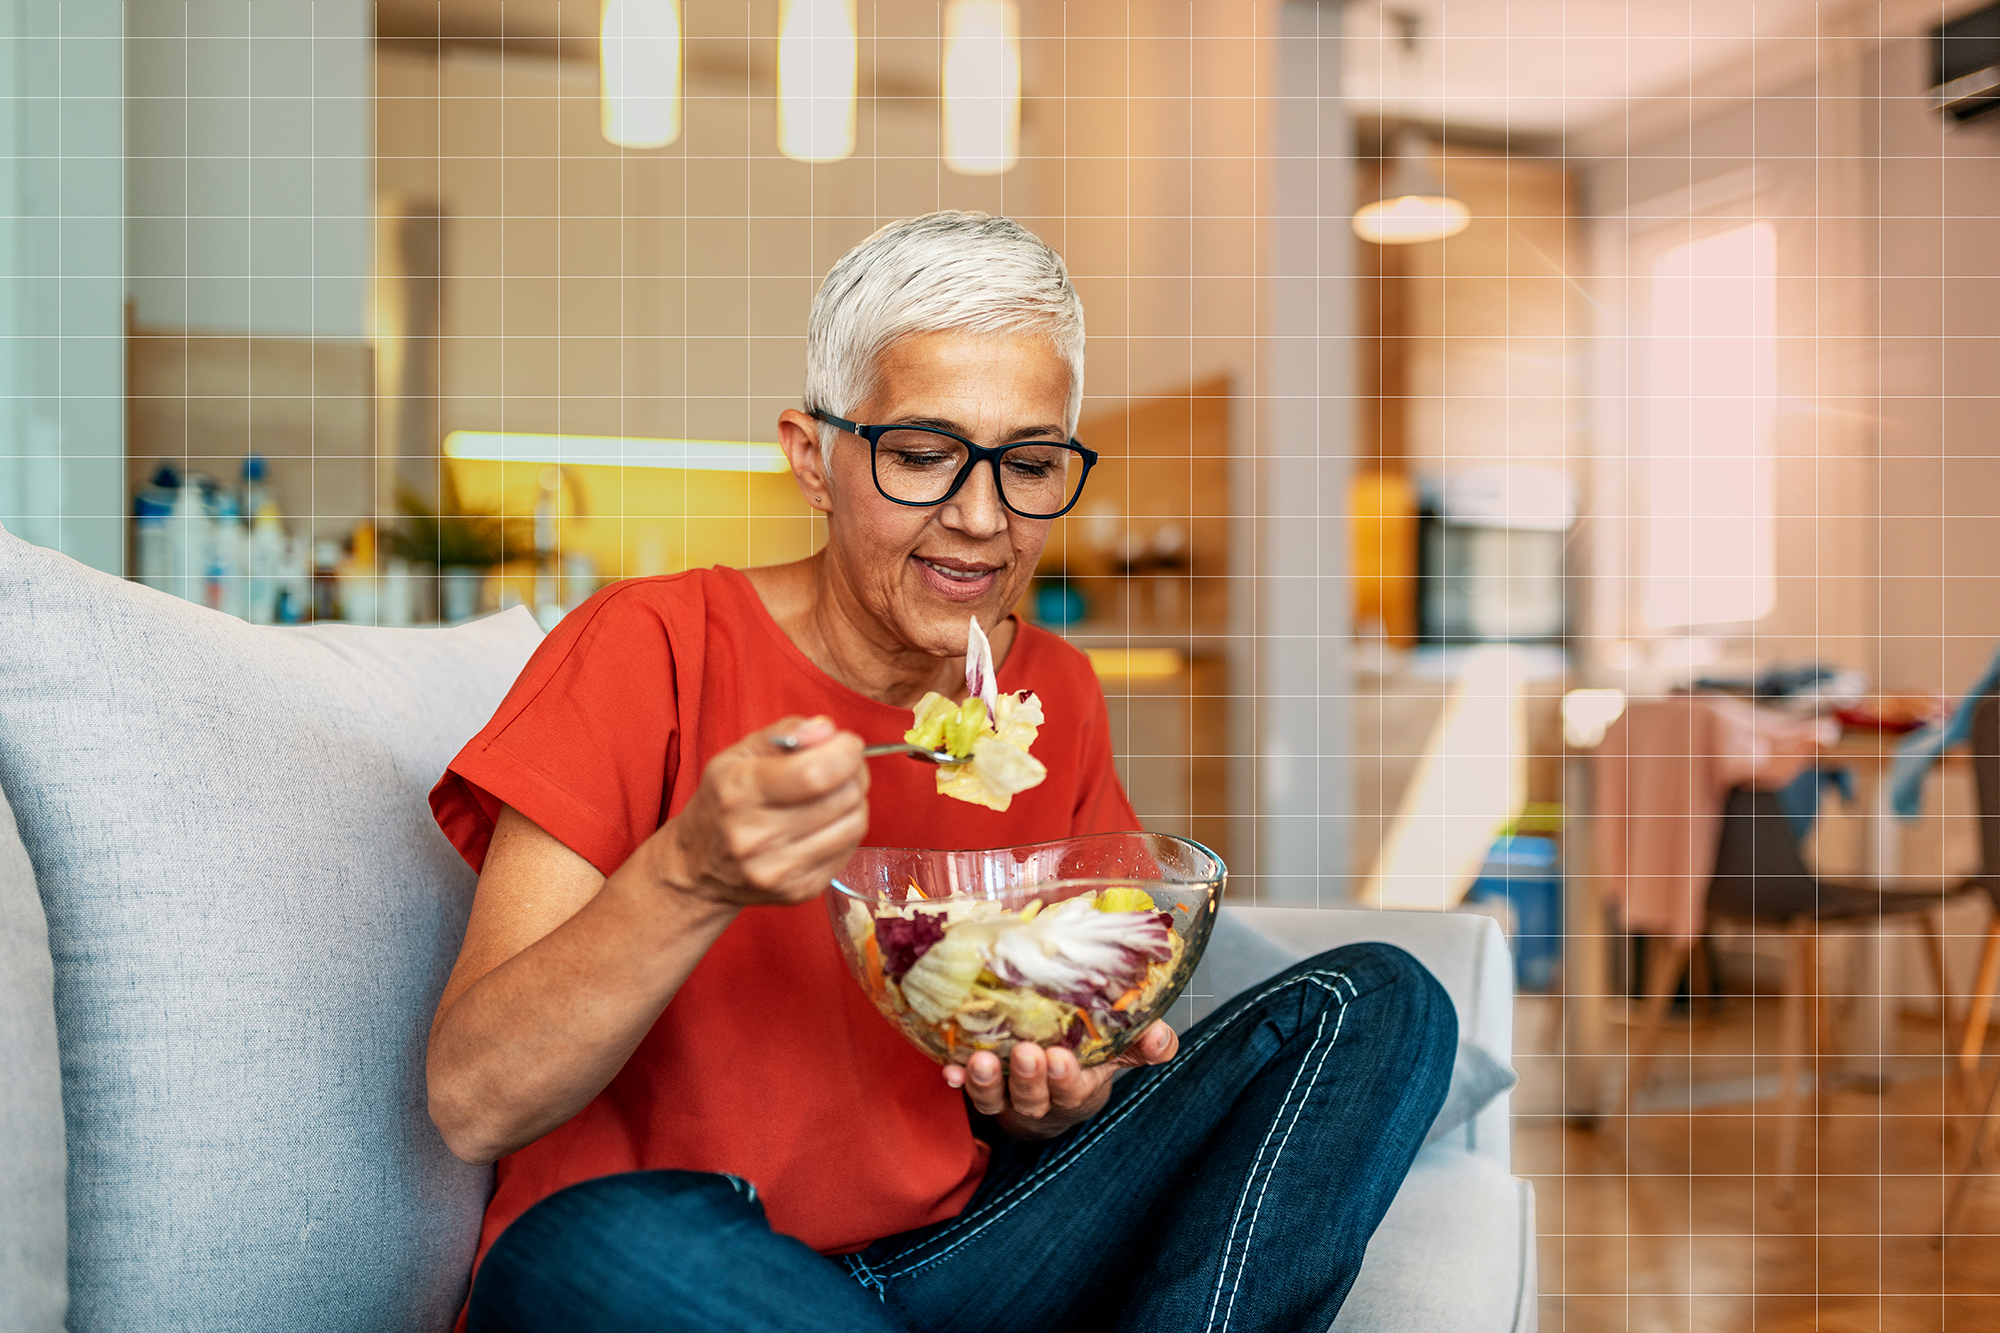 Smiling woman eating vegetable salad at home